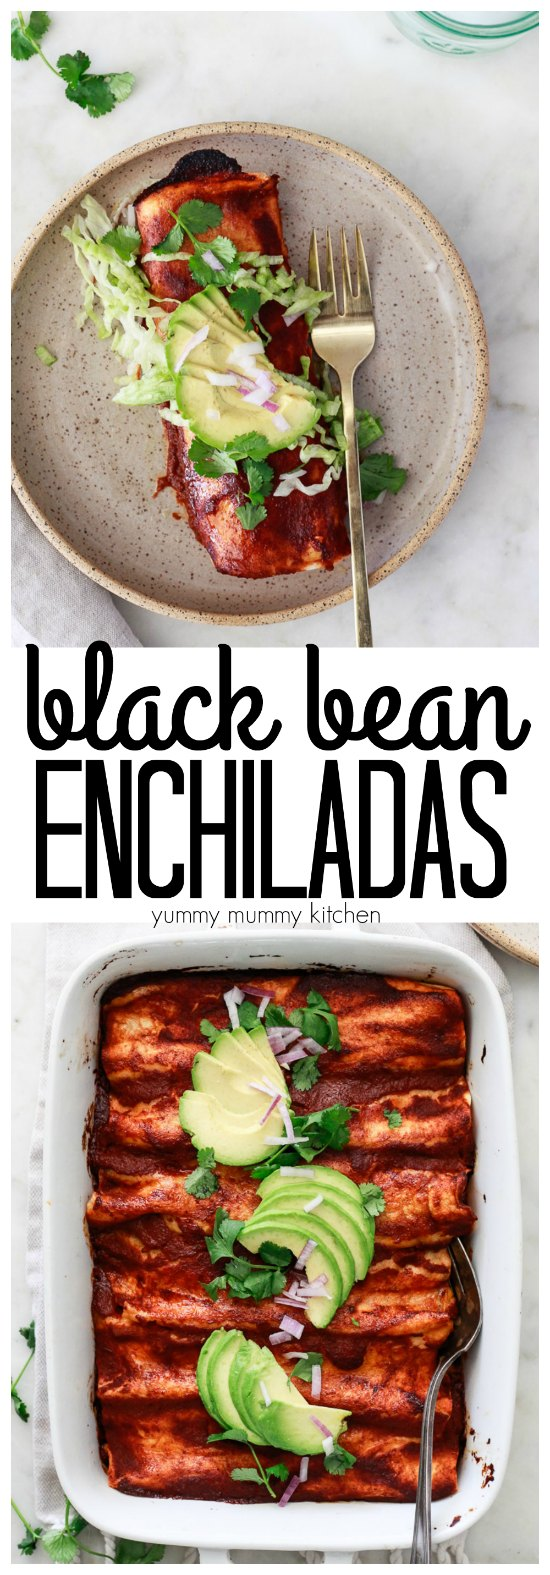 The BEST vegetarian or vegan enchiladas stuffed with black beans, corn, and peppers, and topped with avocado.